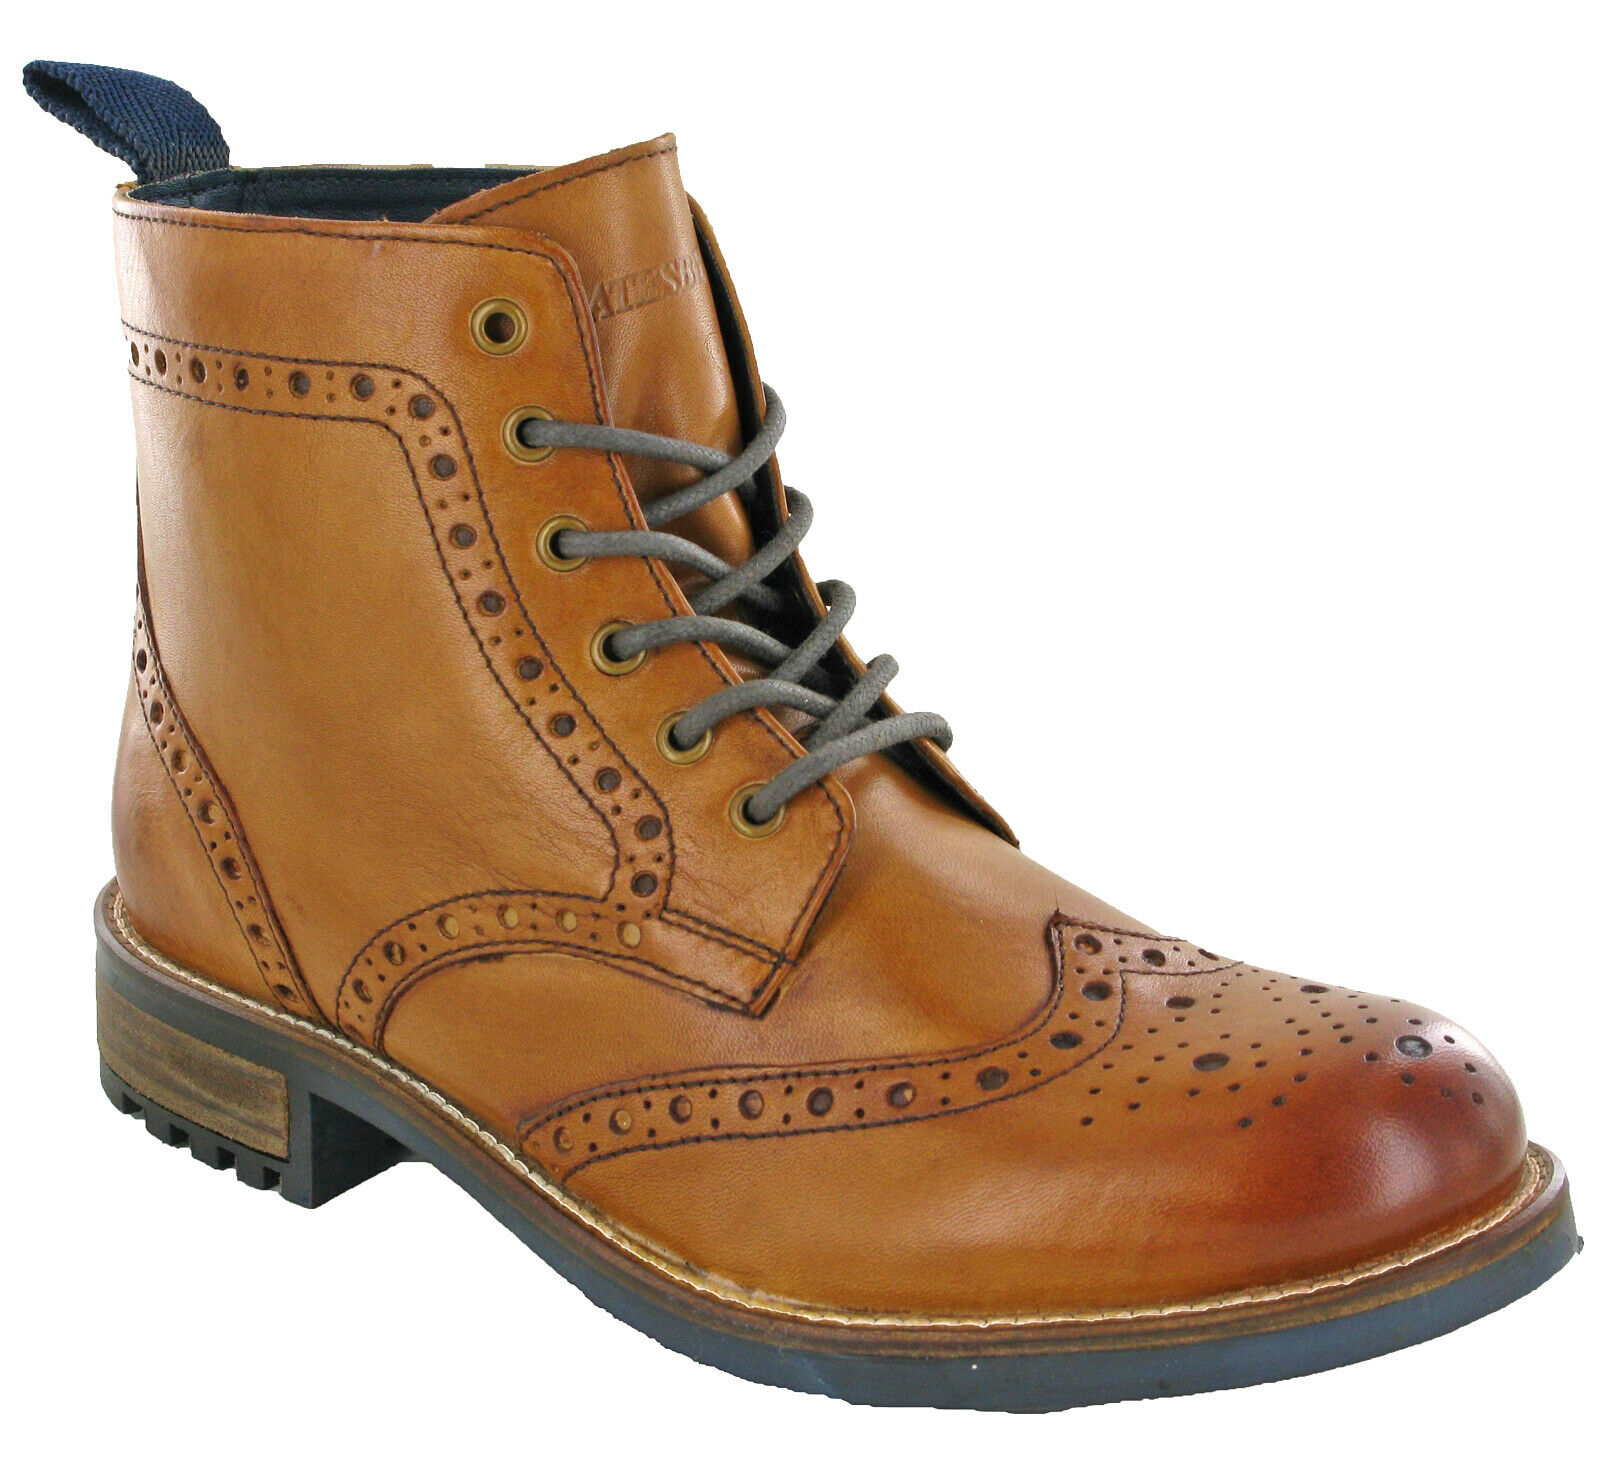 DERBY BROGUE LEATHER BOOTS MENS CLASSIC 6 EYE ANKLE SMOOTH PADDED UK 7-12